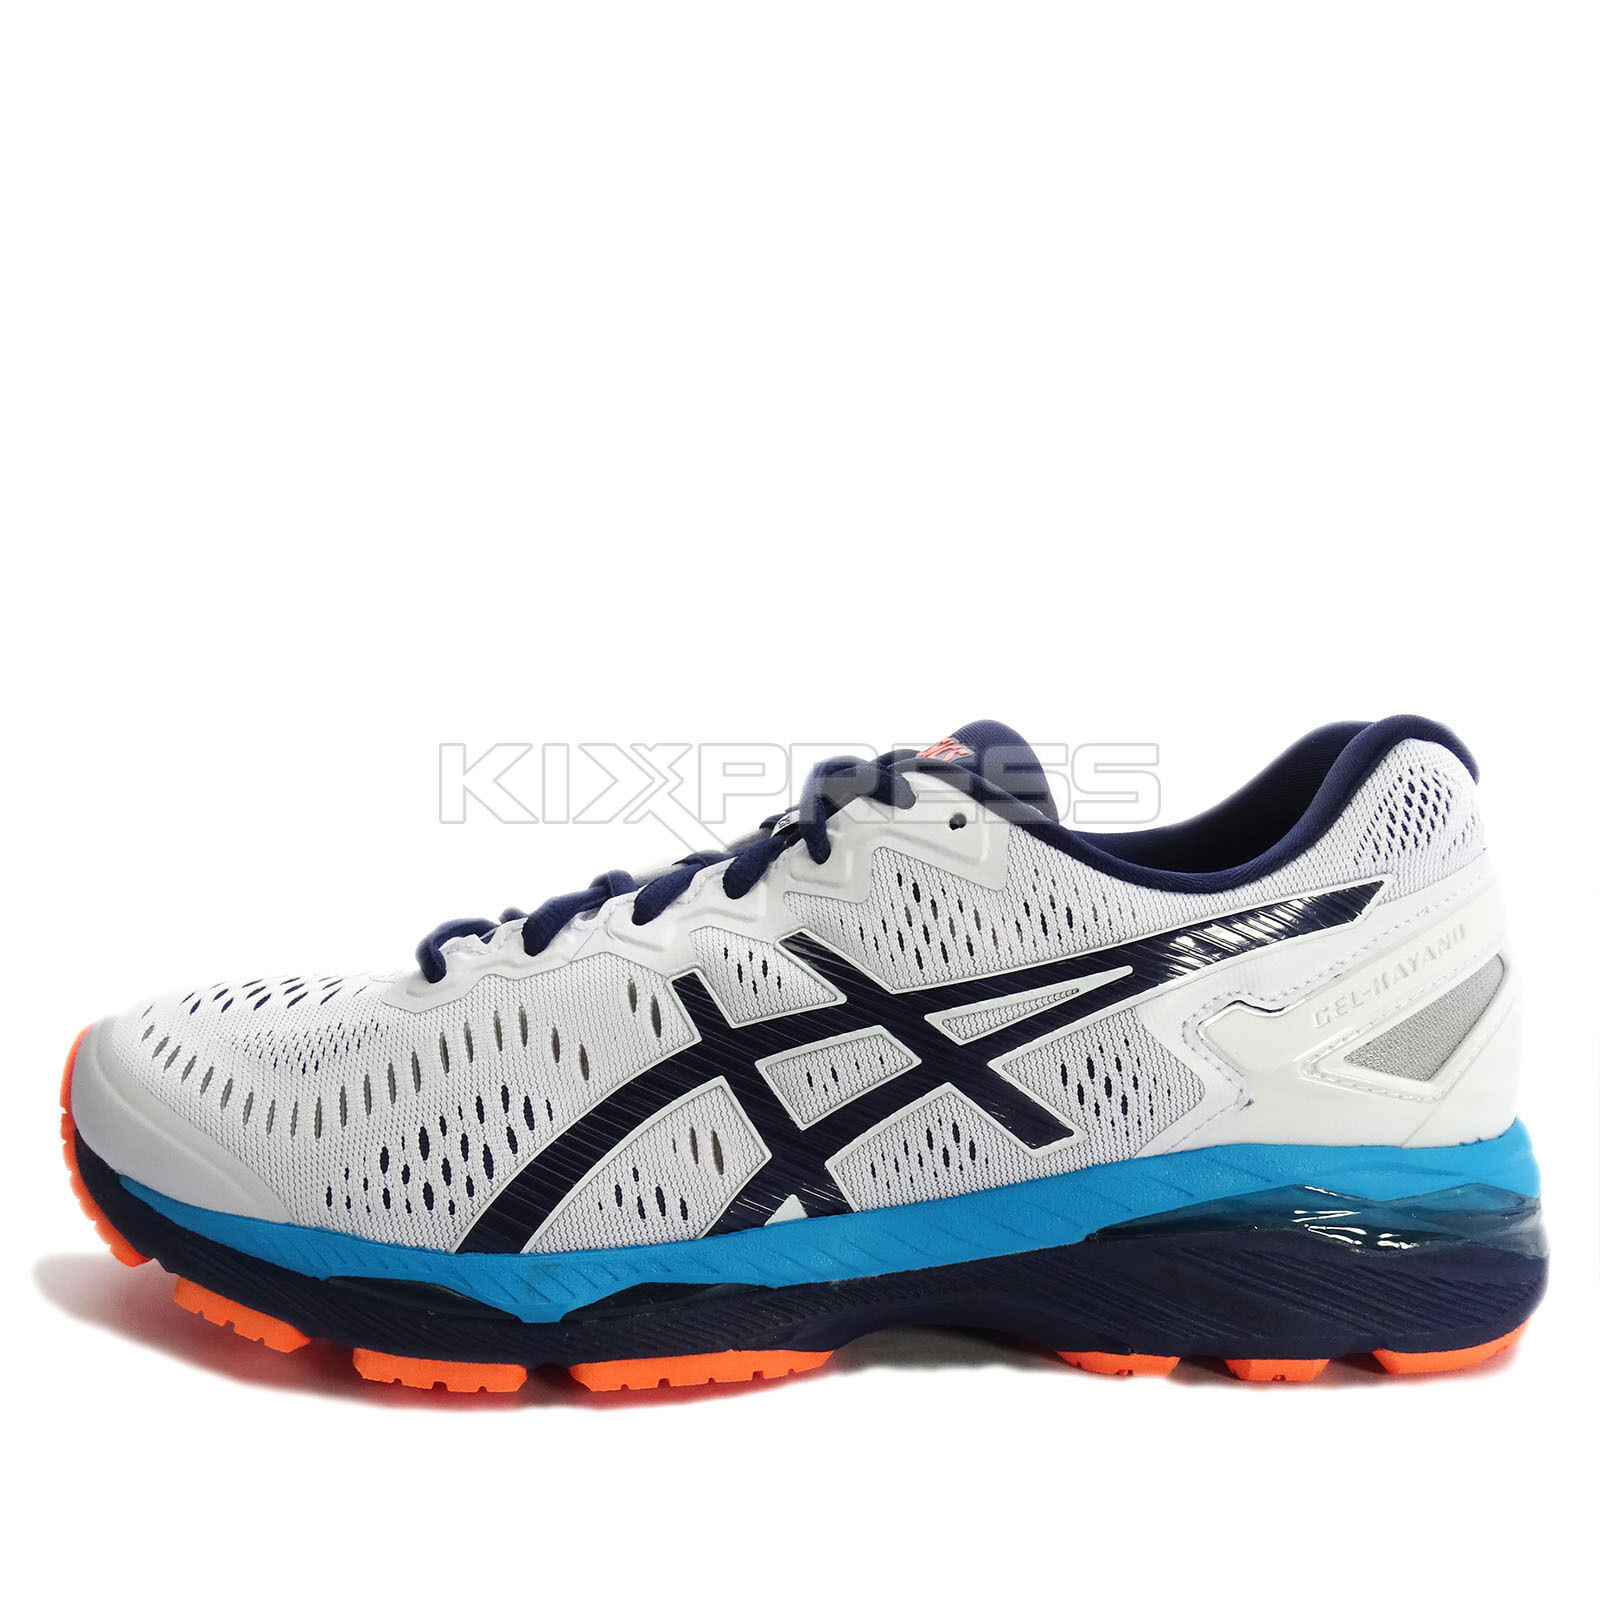 Asics GEL-Kayano 23 [T646N-0149] Running White Indigo blueeo-Hot orange